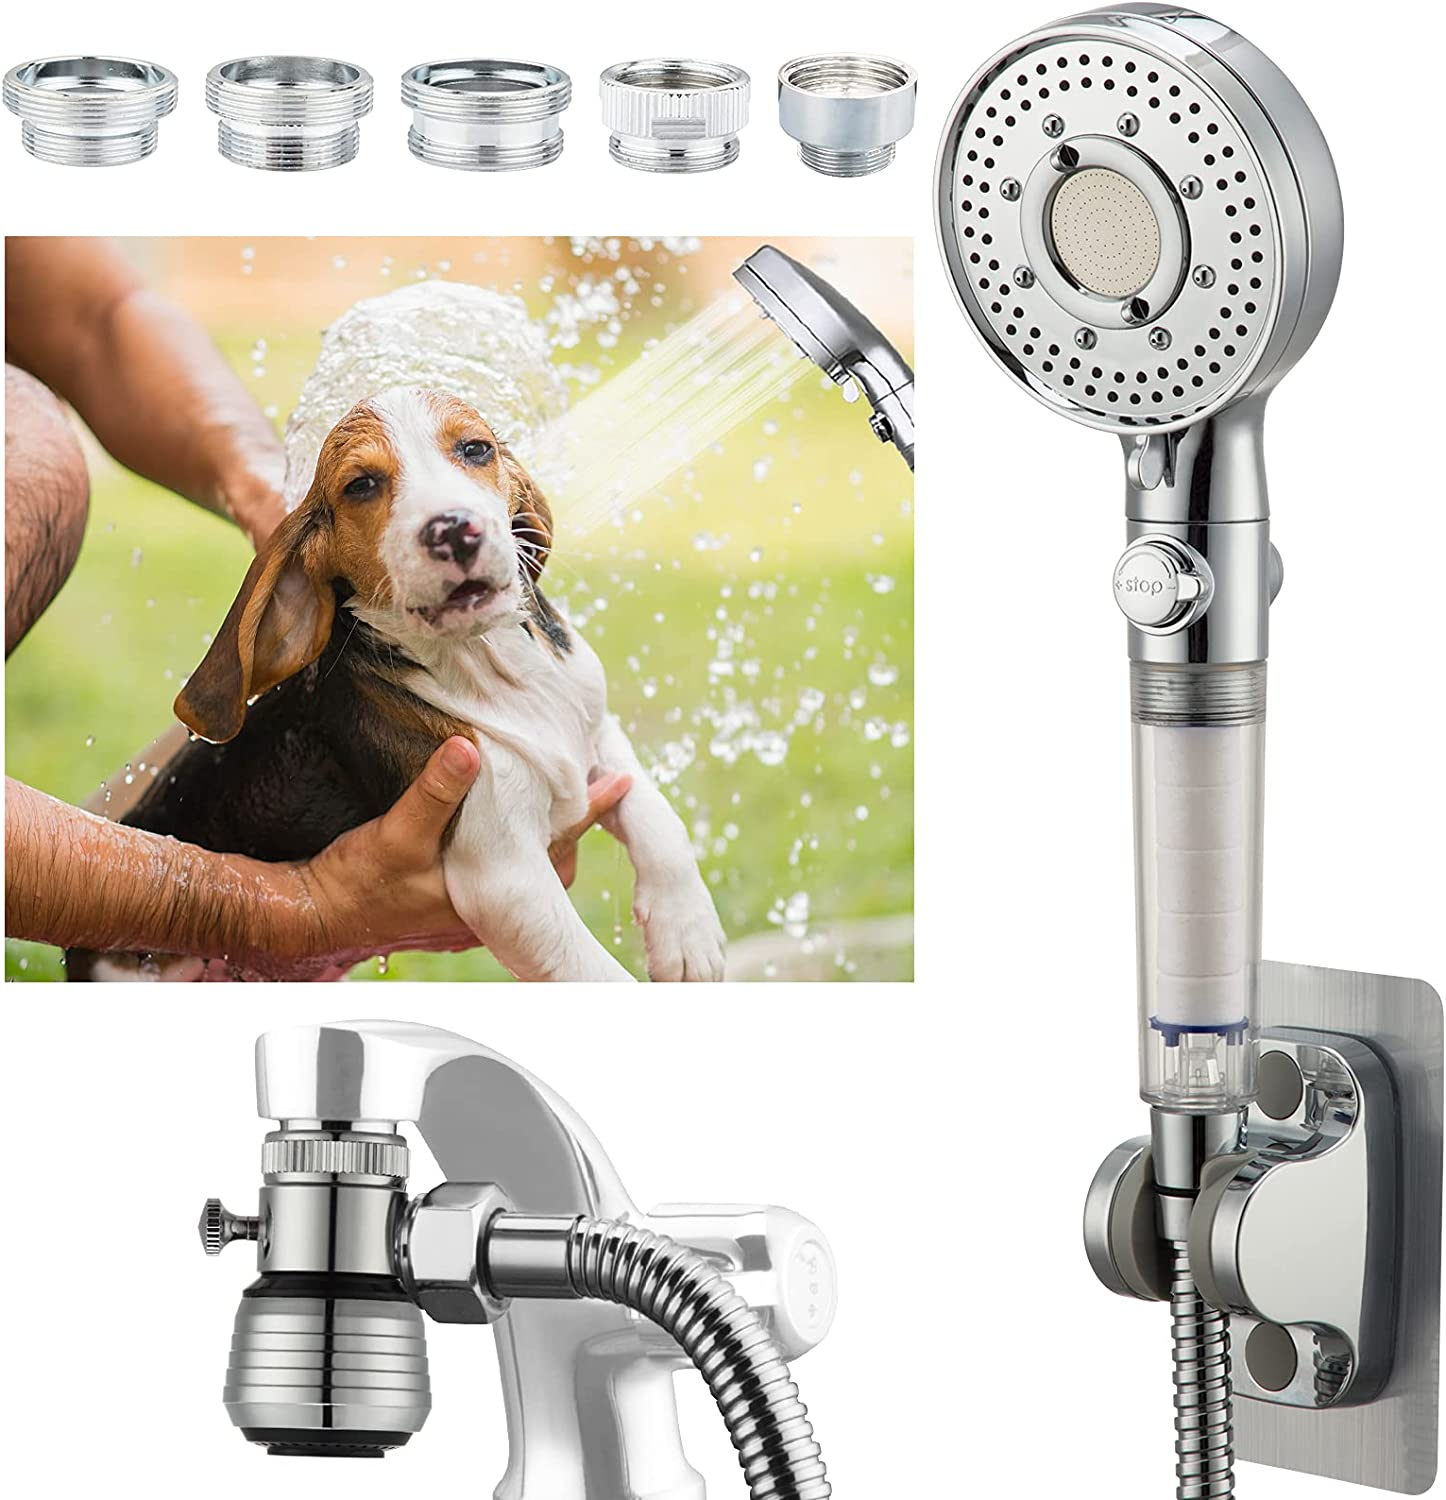 Filter Dog-Shower-Head Faucet Bathtub-Sink Limited time cheap sale Max 44% OFF Sprayer-Attachment -